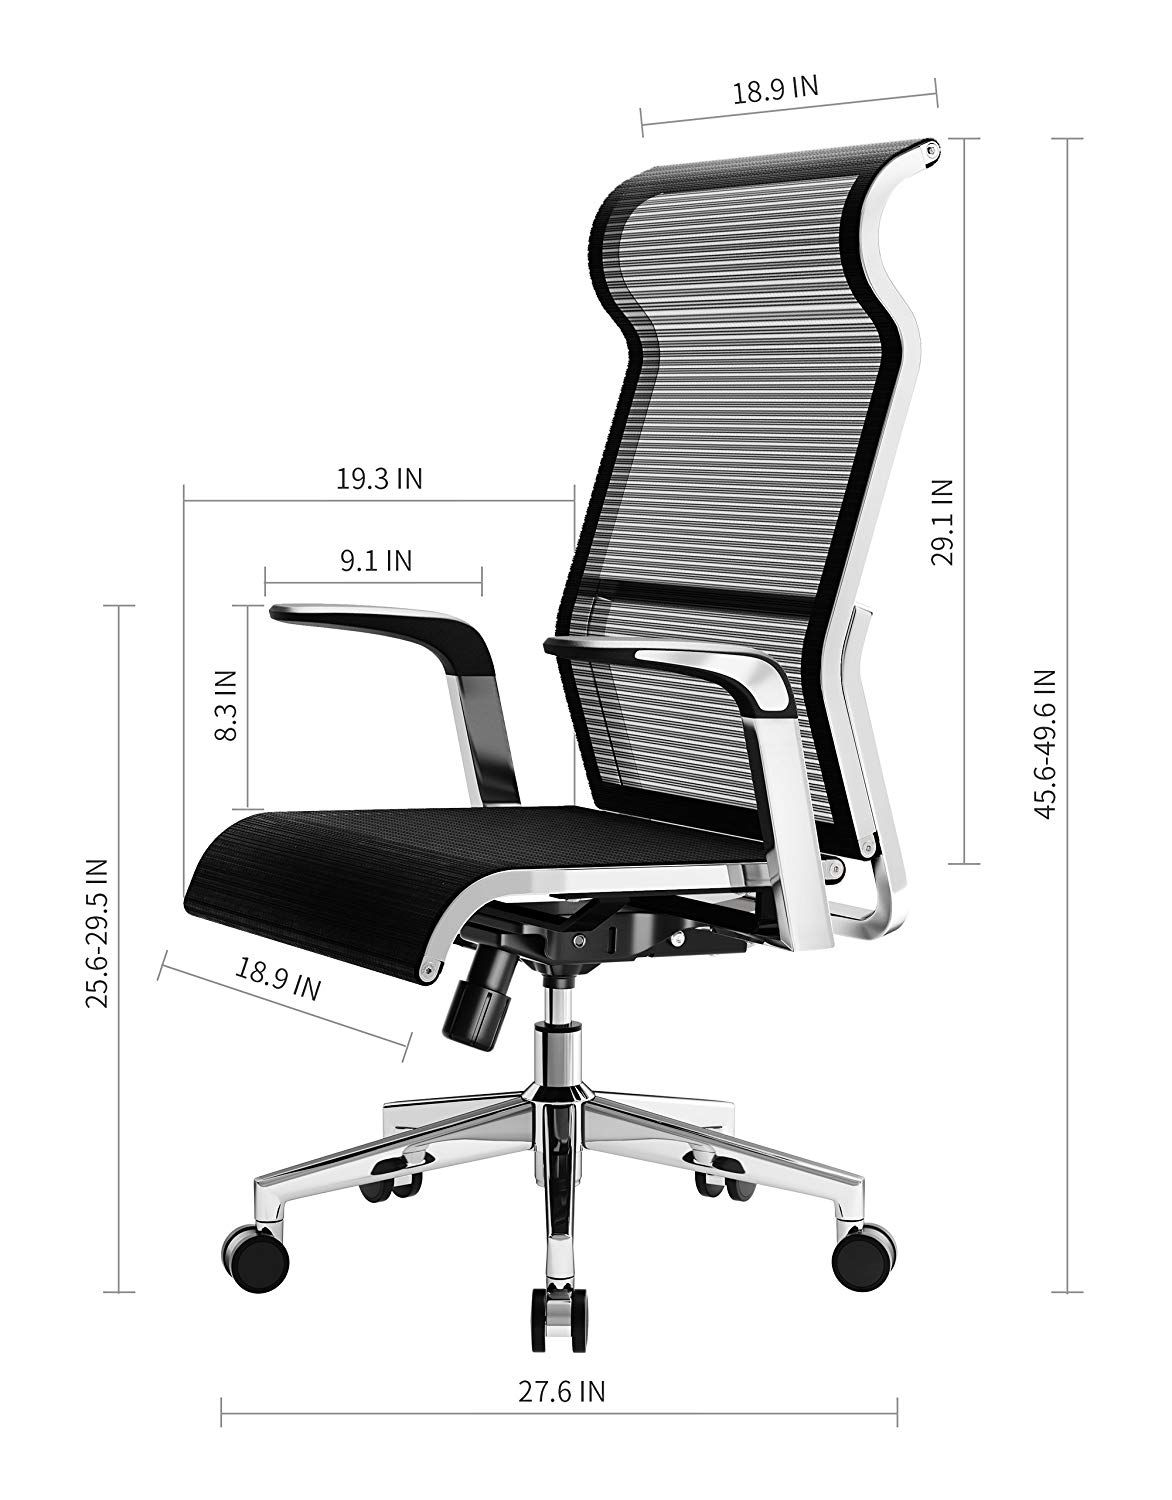 Pin by Tristan Hansen on Chair Ideas in 2020 (With images